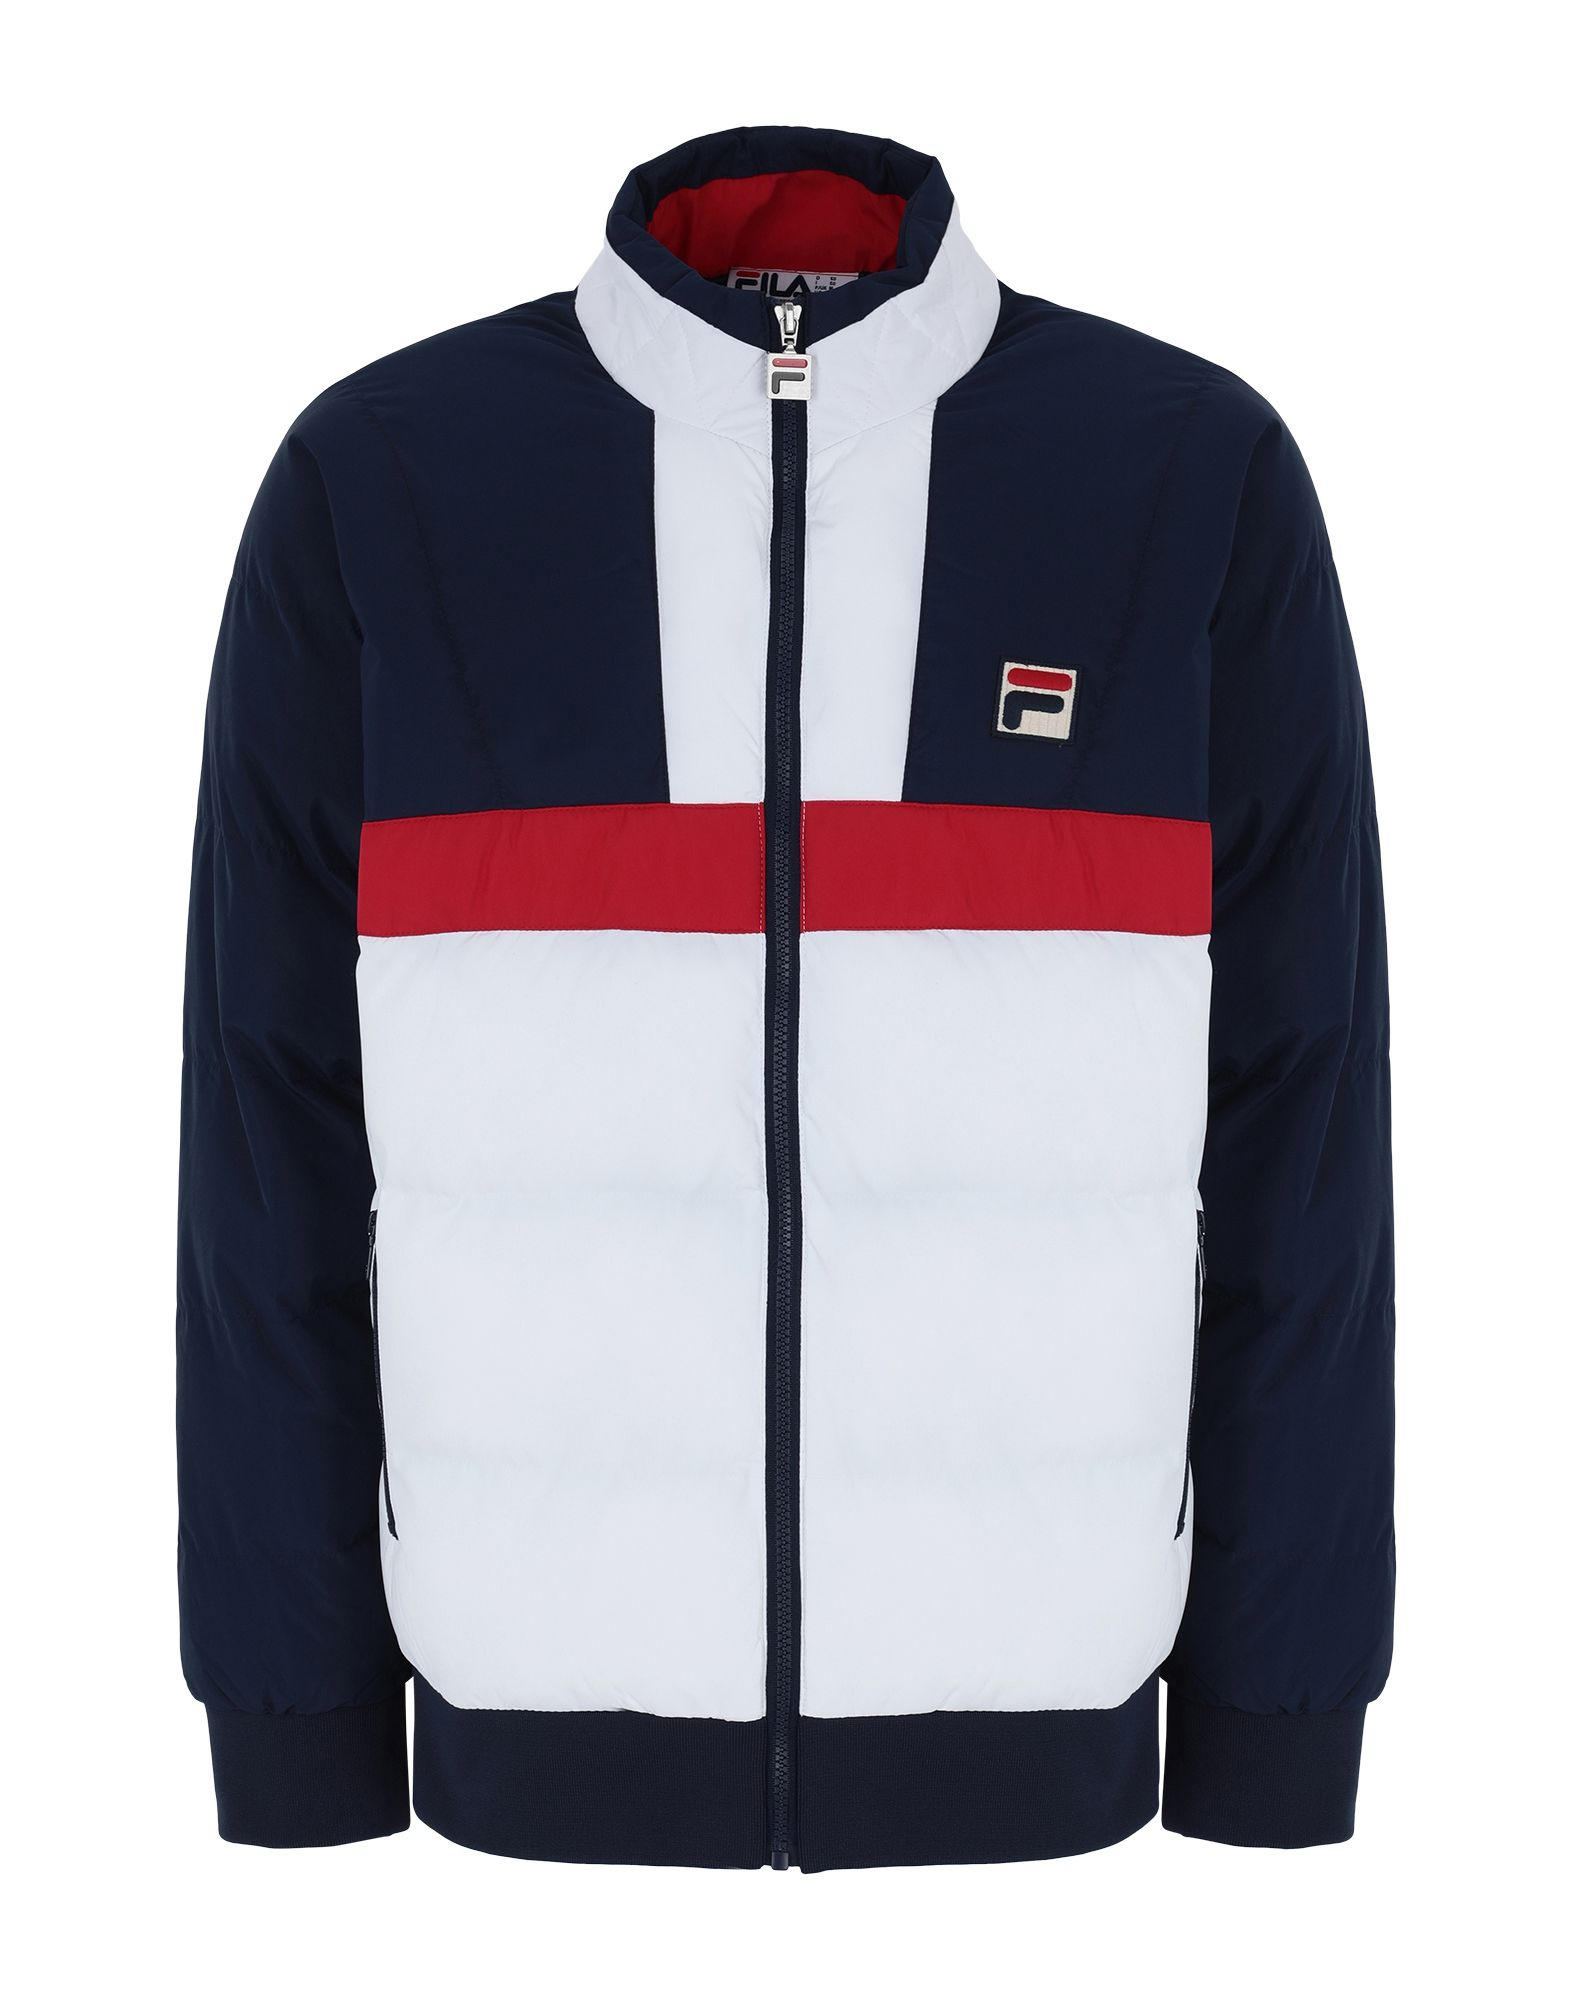 FILA HERITAGE Synthetic Down Jackets - Item 41934743